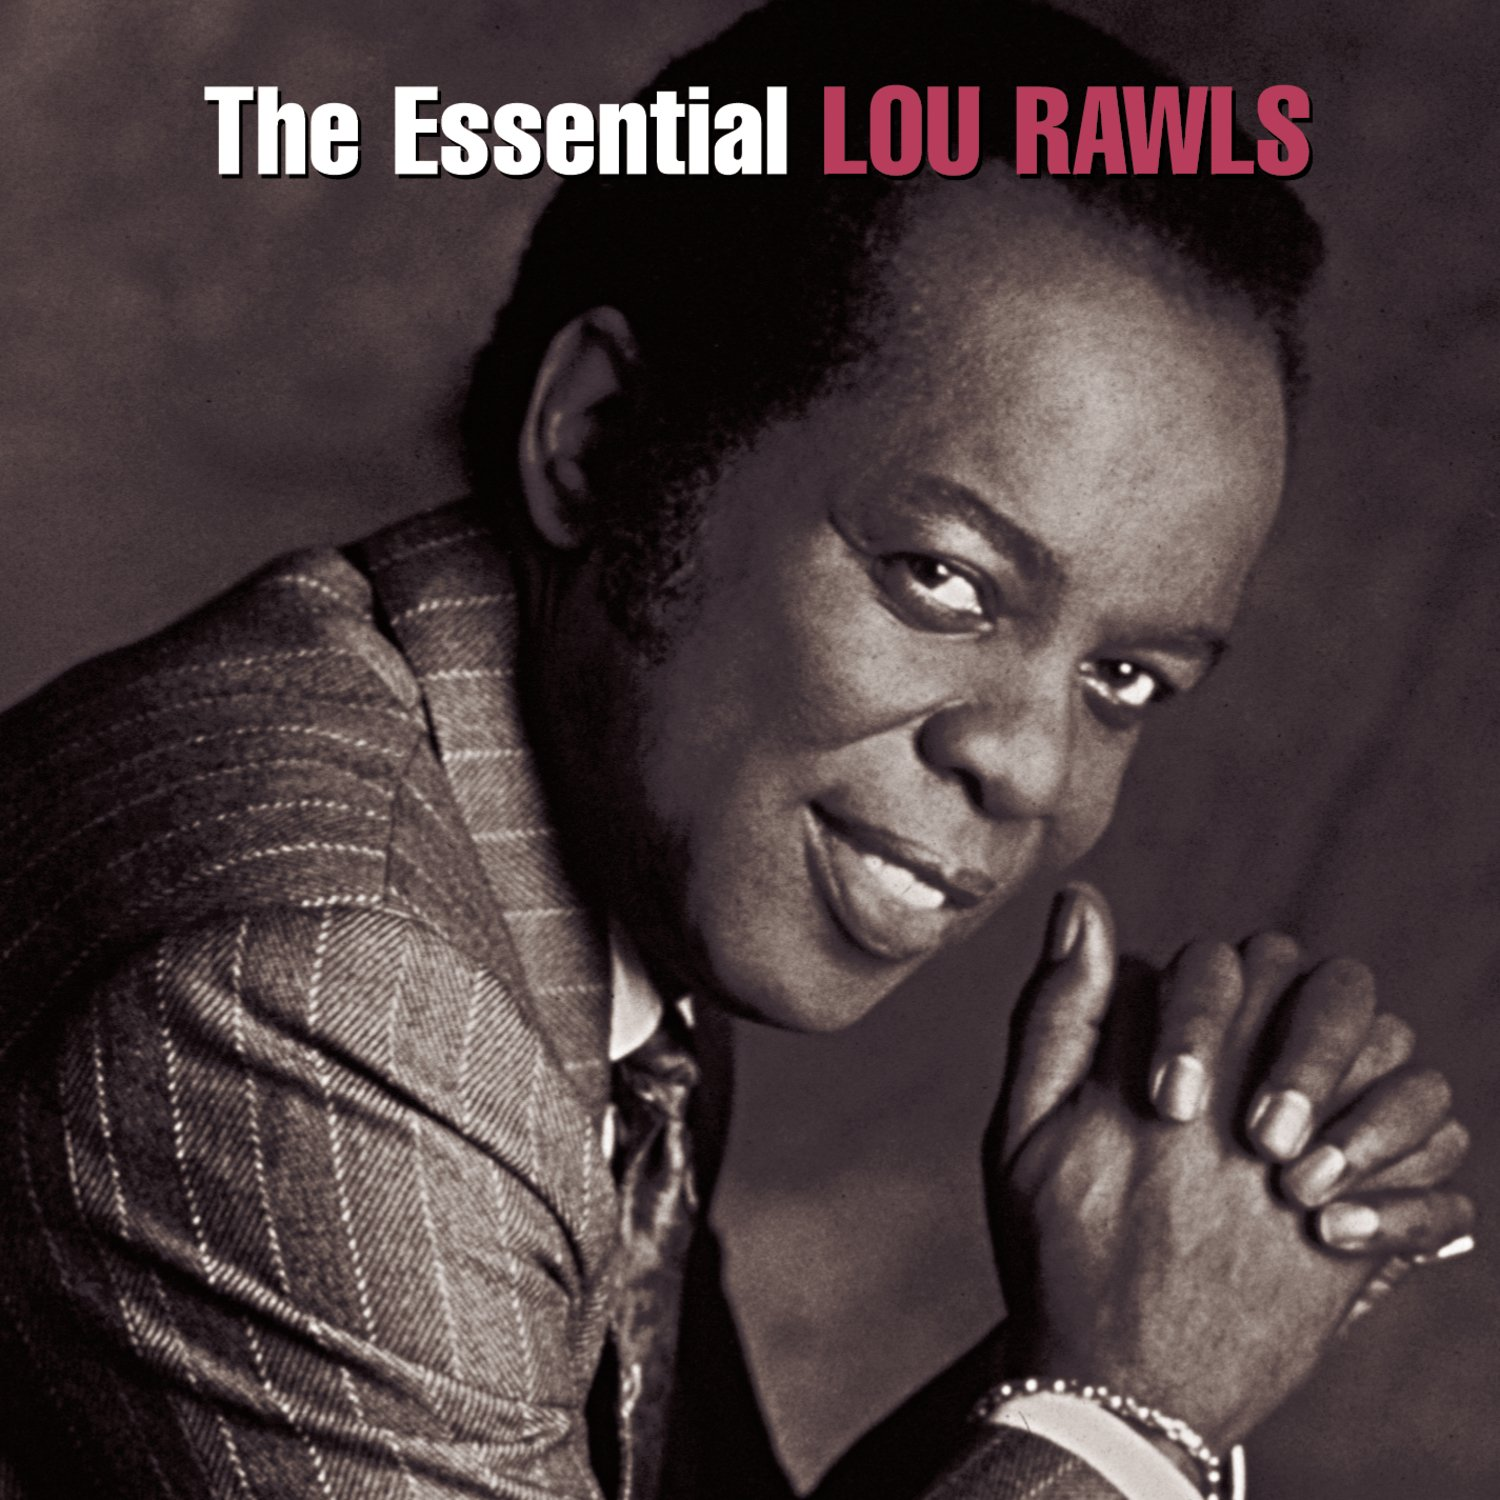 The Essential Lou Rawls by SMG